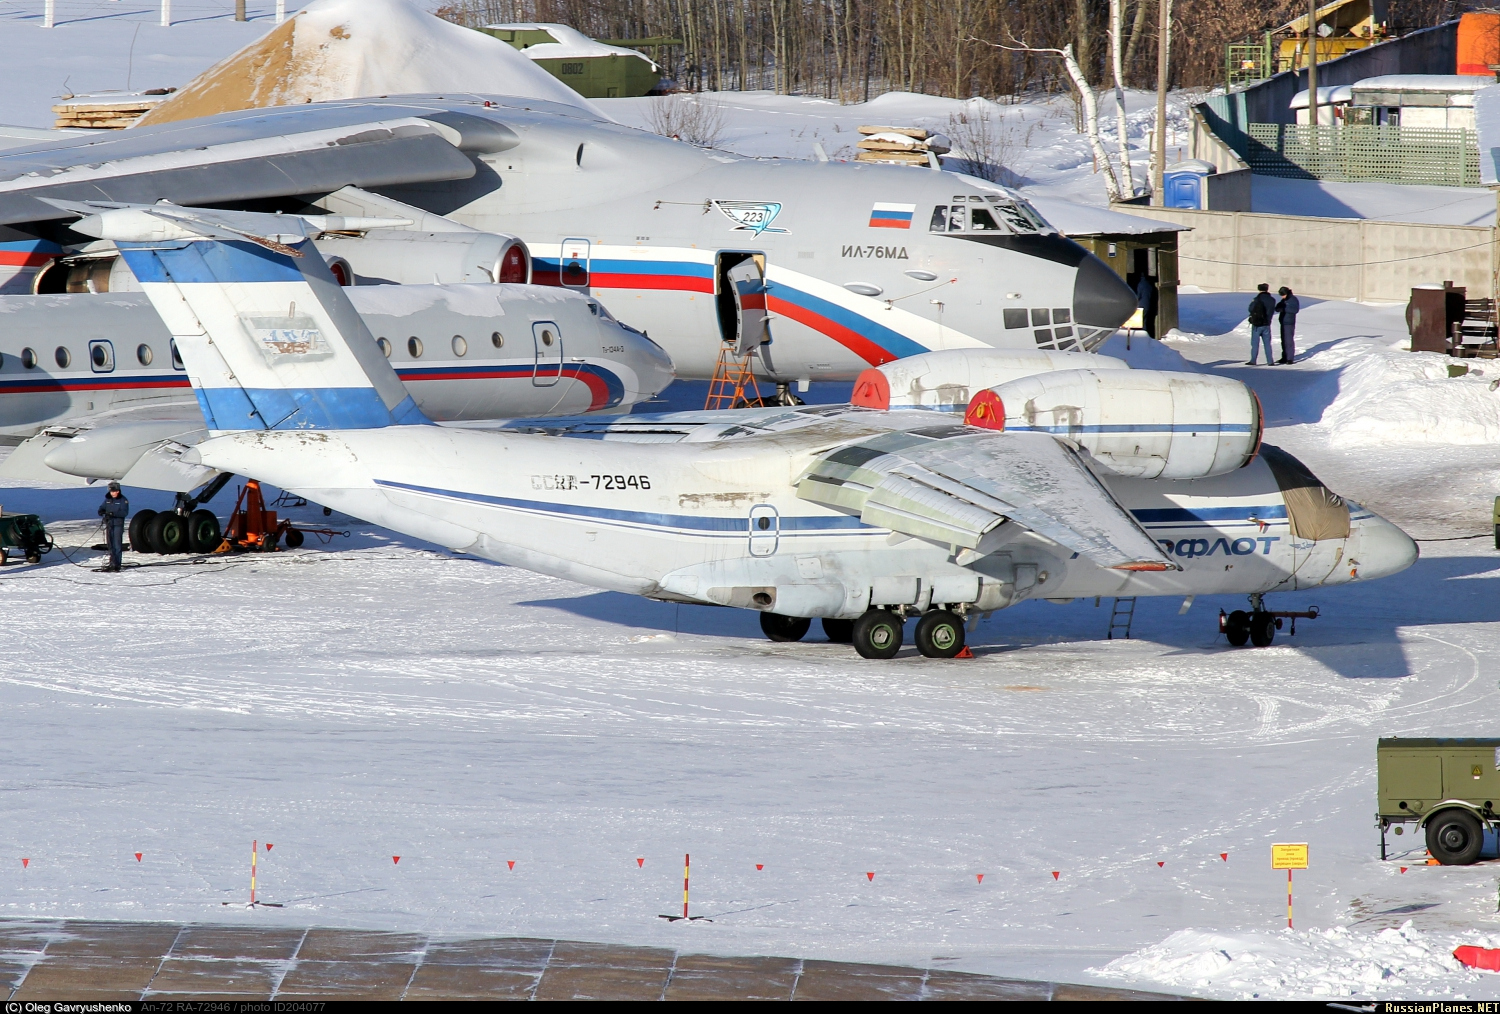 http://russianplanes.net/images/to205000/204077.jpg